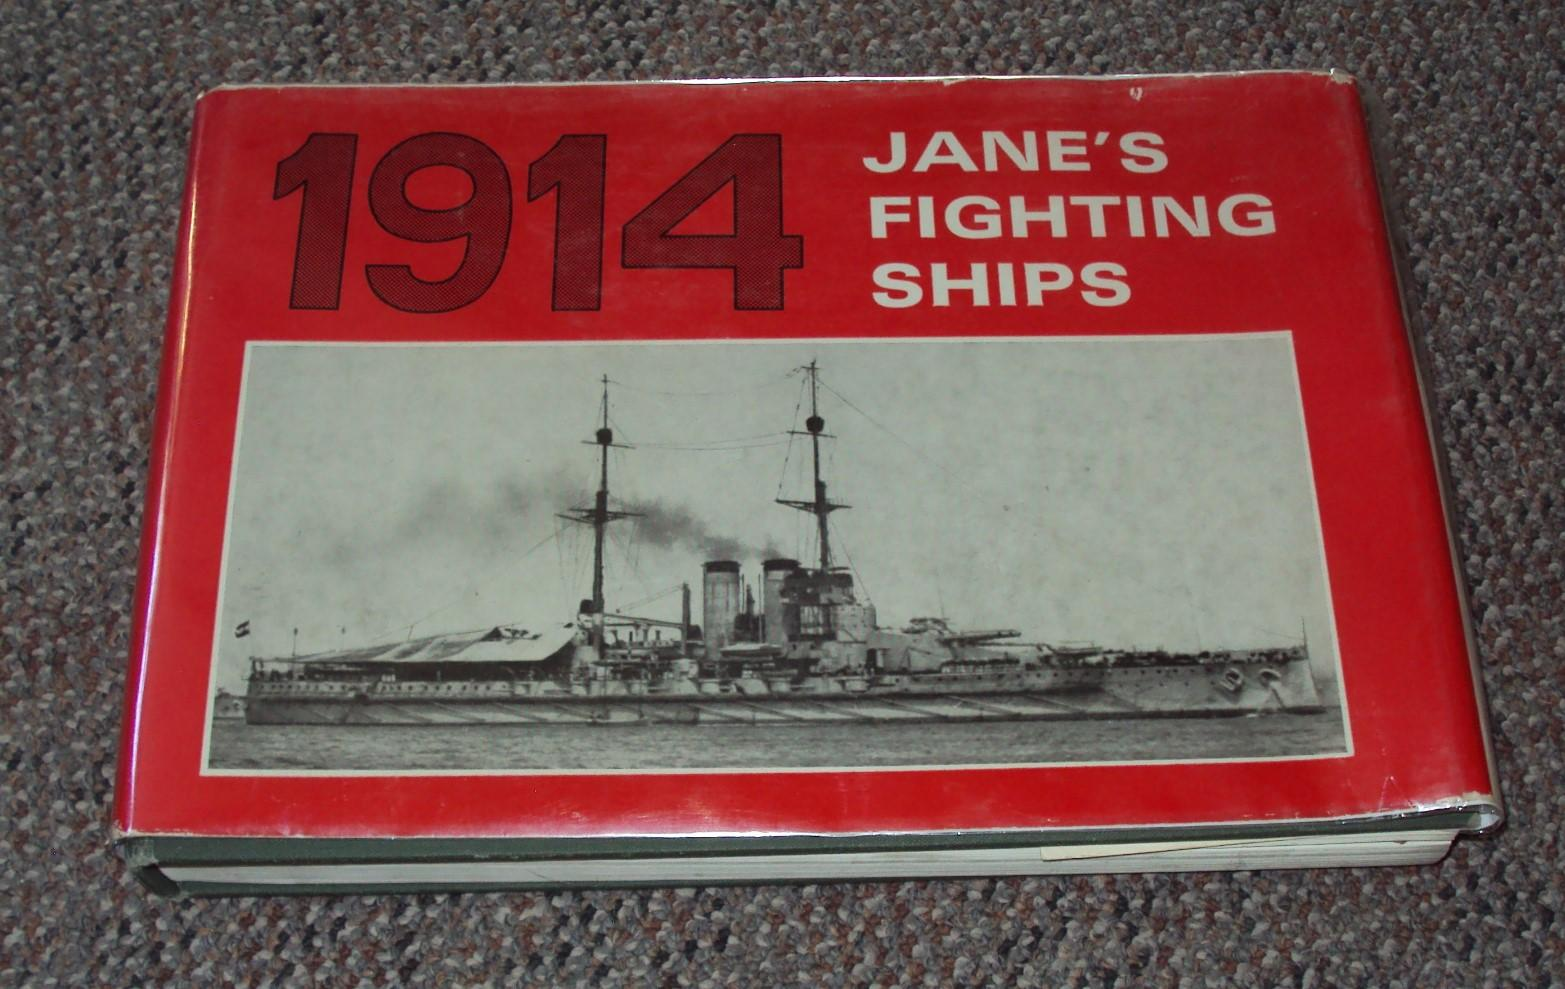 Jane's Fighting Ships 1914: Jane, Fred T.